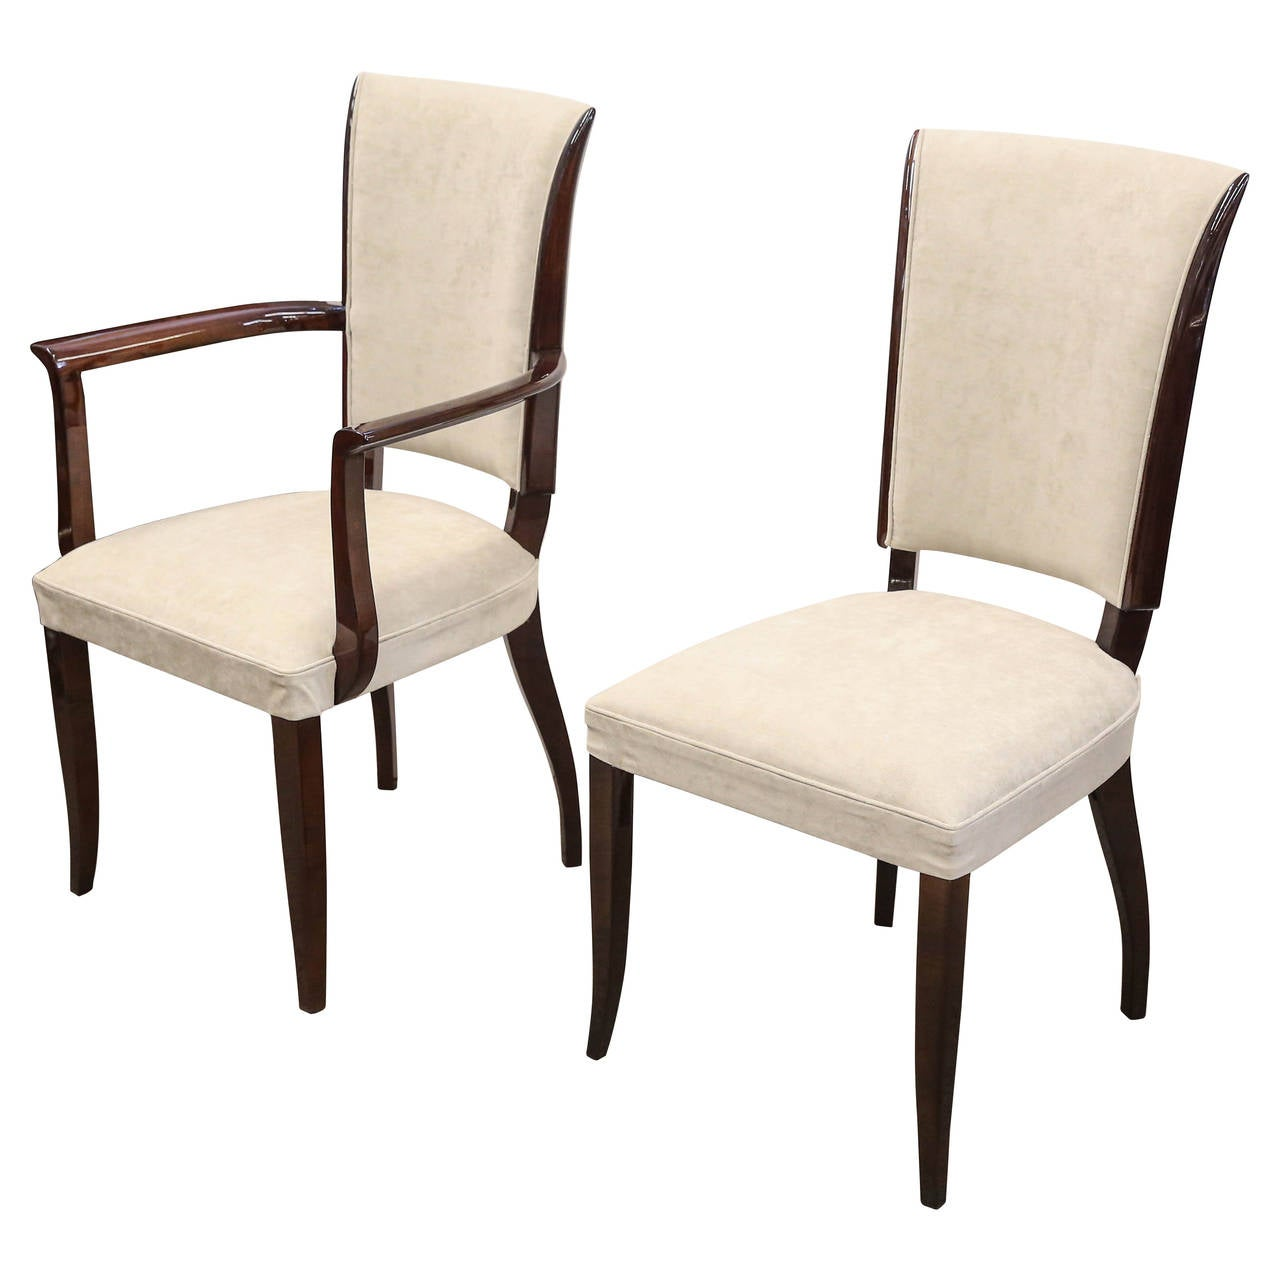 this 12 walnut dining room chairs is no longer available